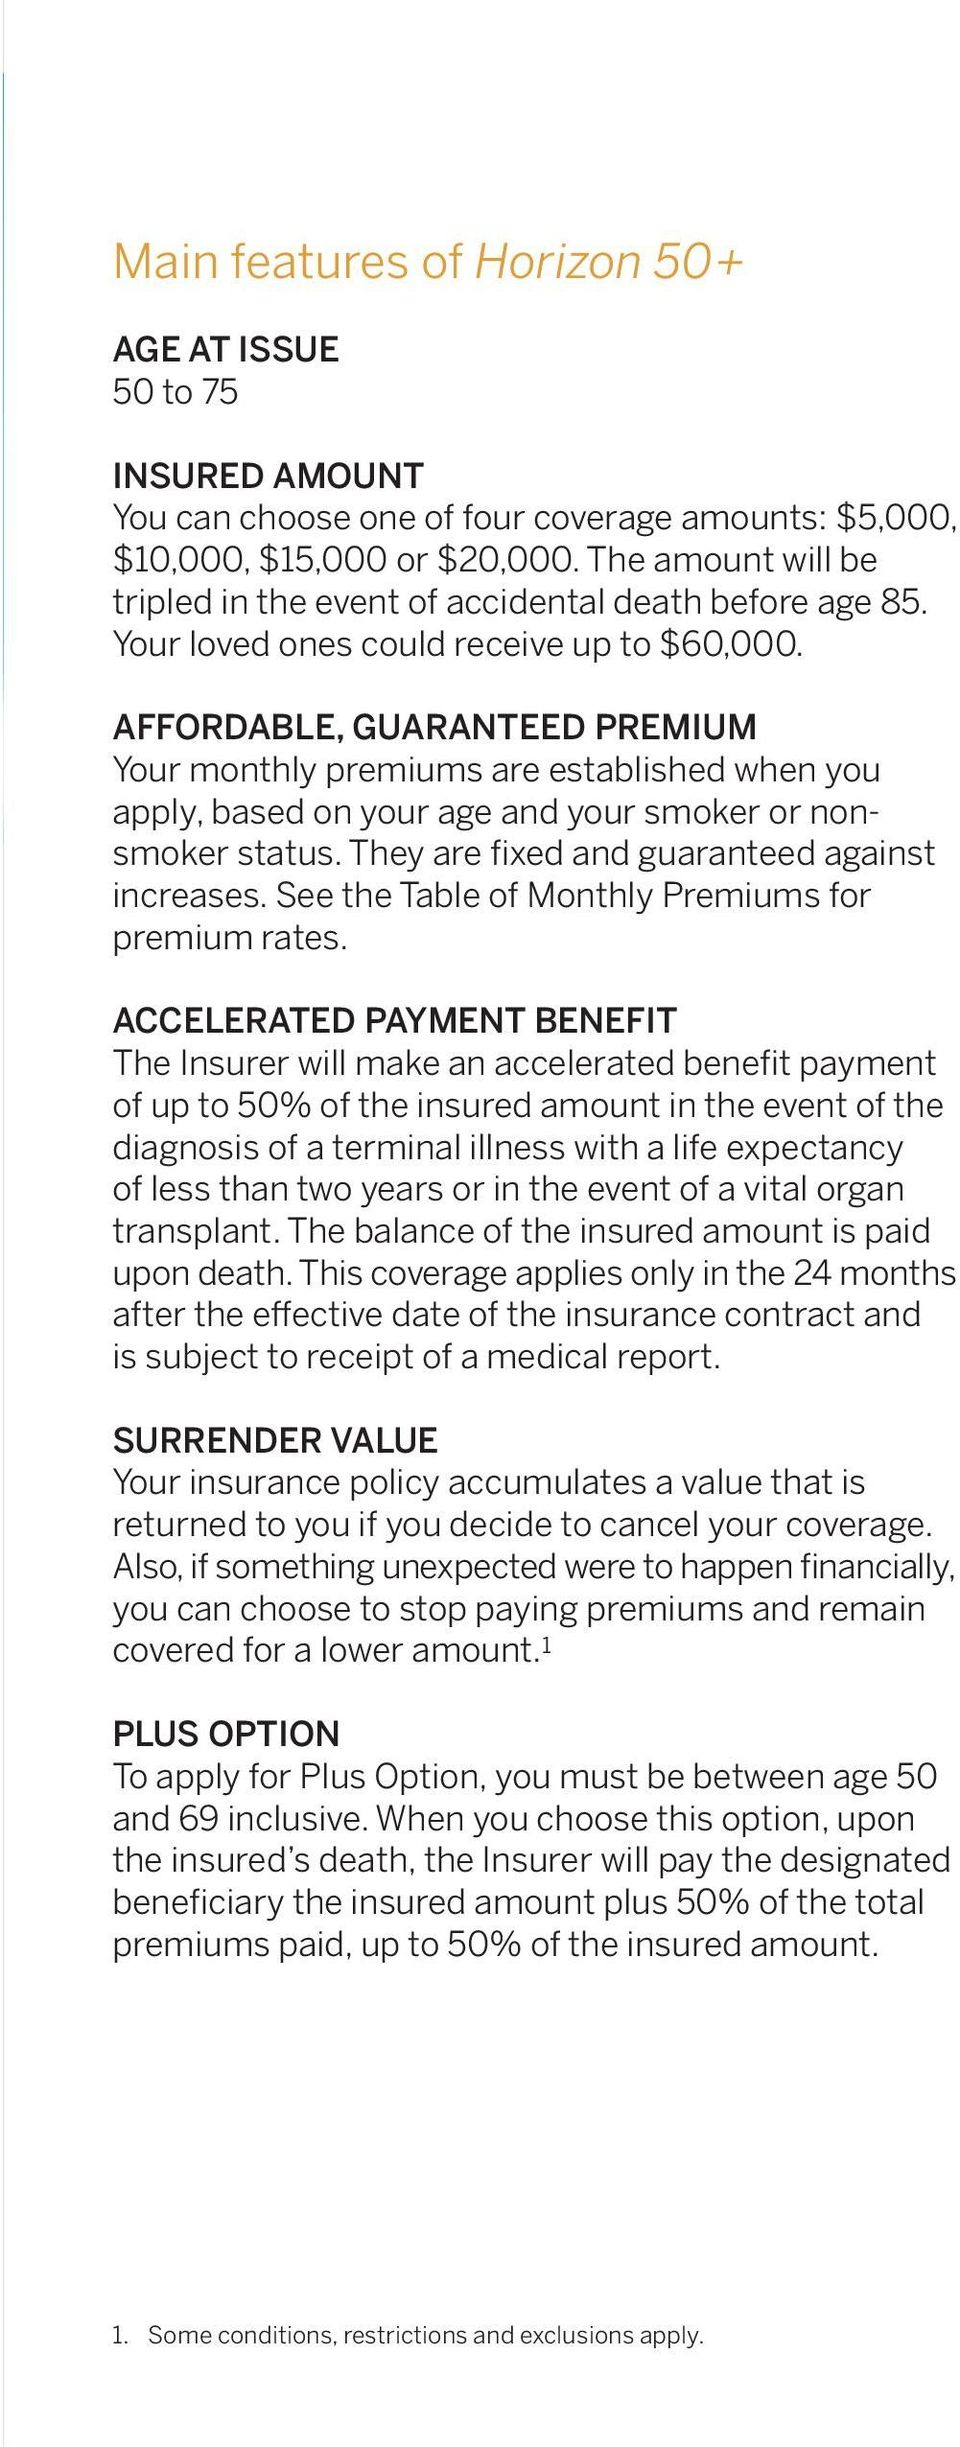 Affordable, guaranteed premium Your monthly premiums are established when you apply, based on your age and your smoker or nonsmoker status. They are fixed and guaranteed against increases.